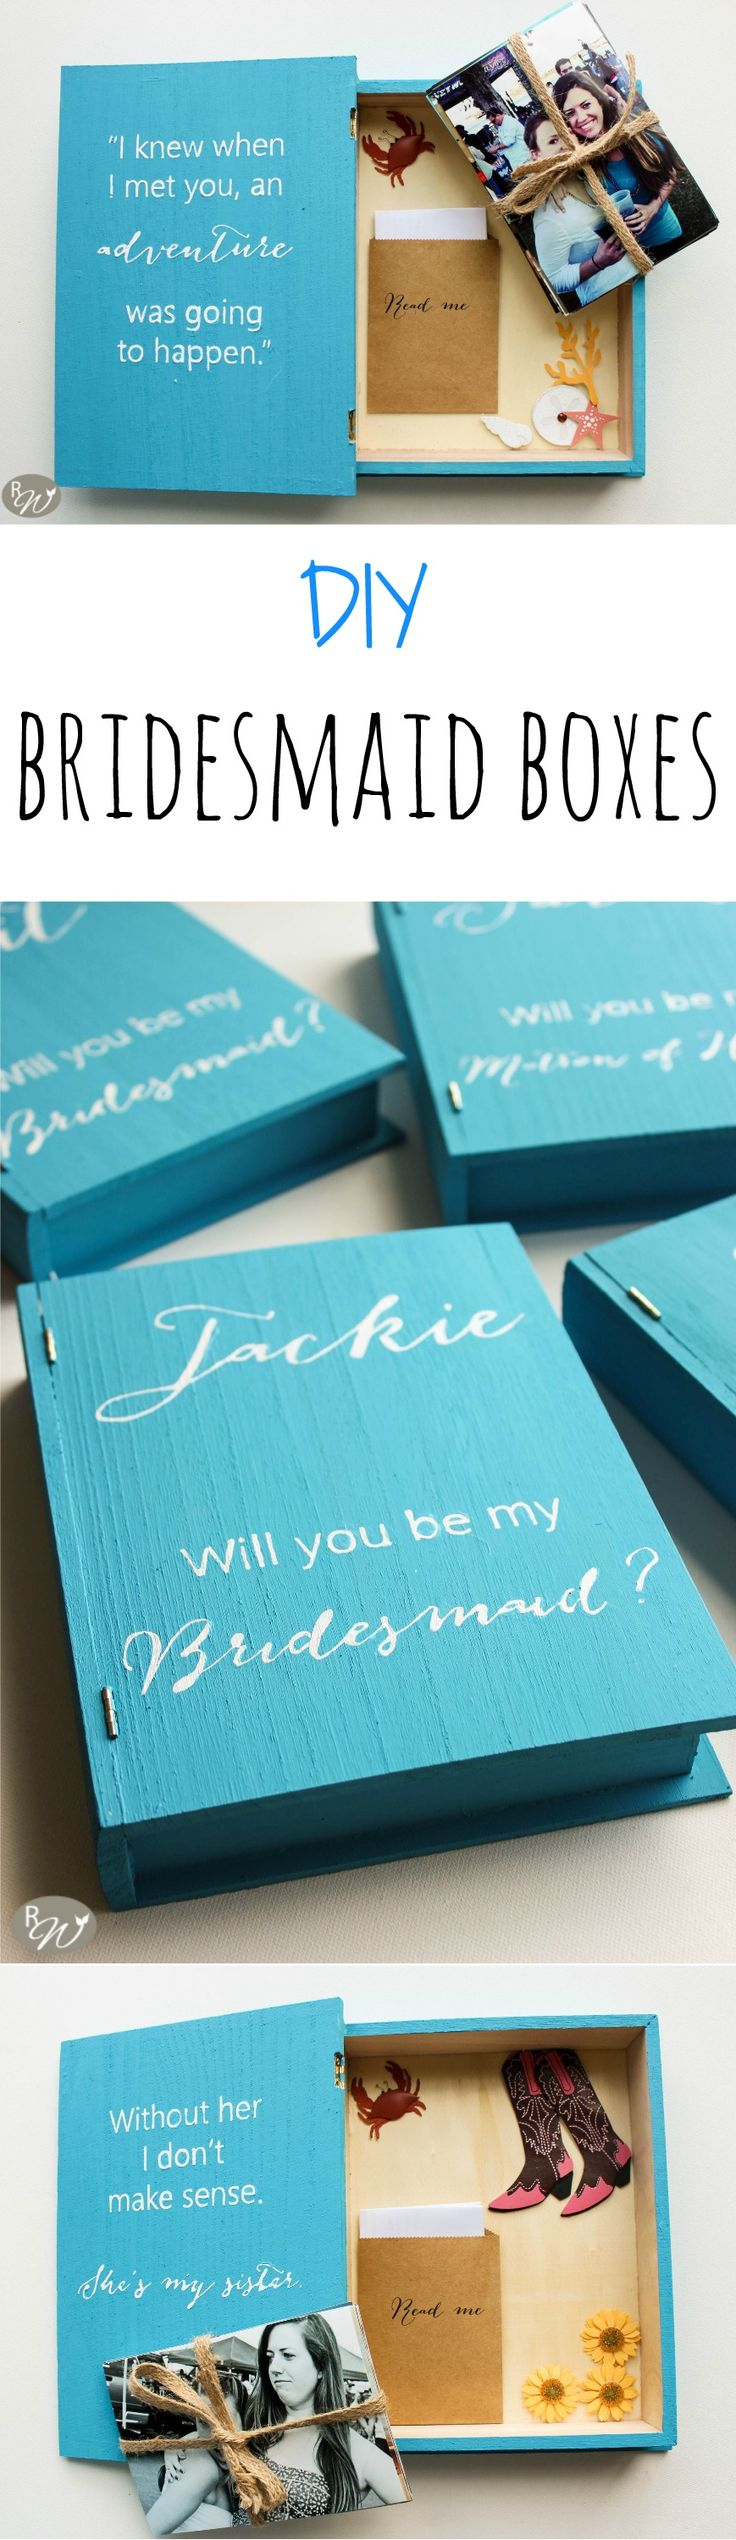 Propose to your bridesmaids with these DIY bridesmaid boxes that are sure to be keepsakes forever | therusticwillow.com